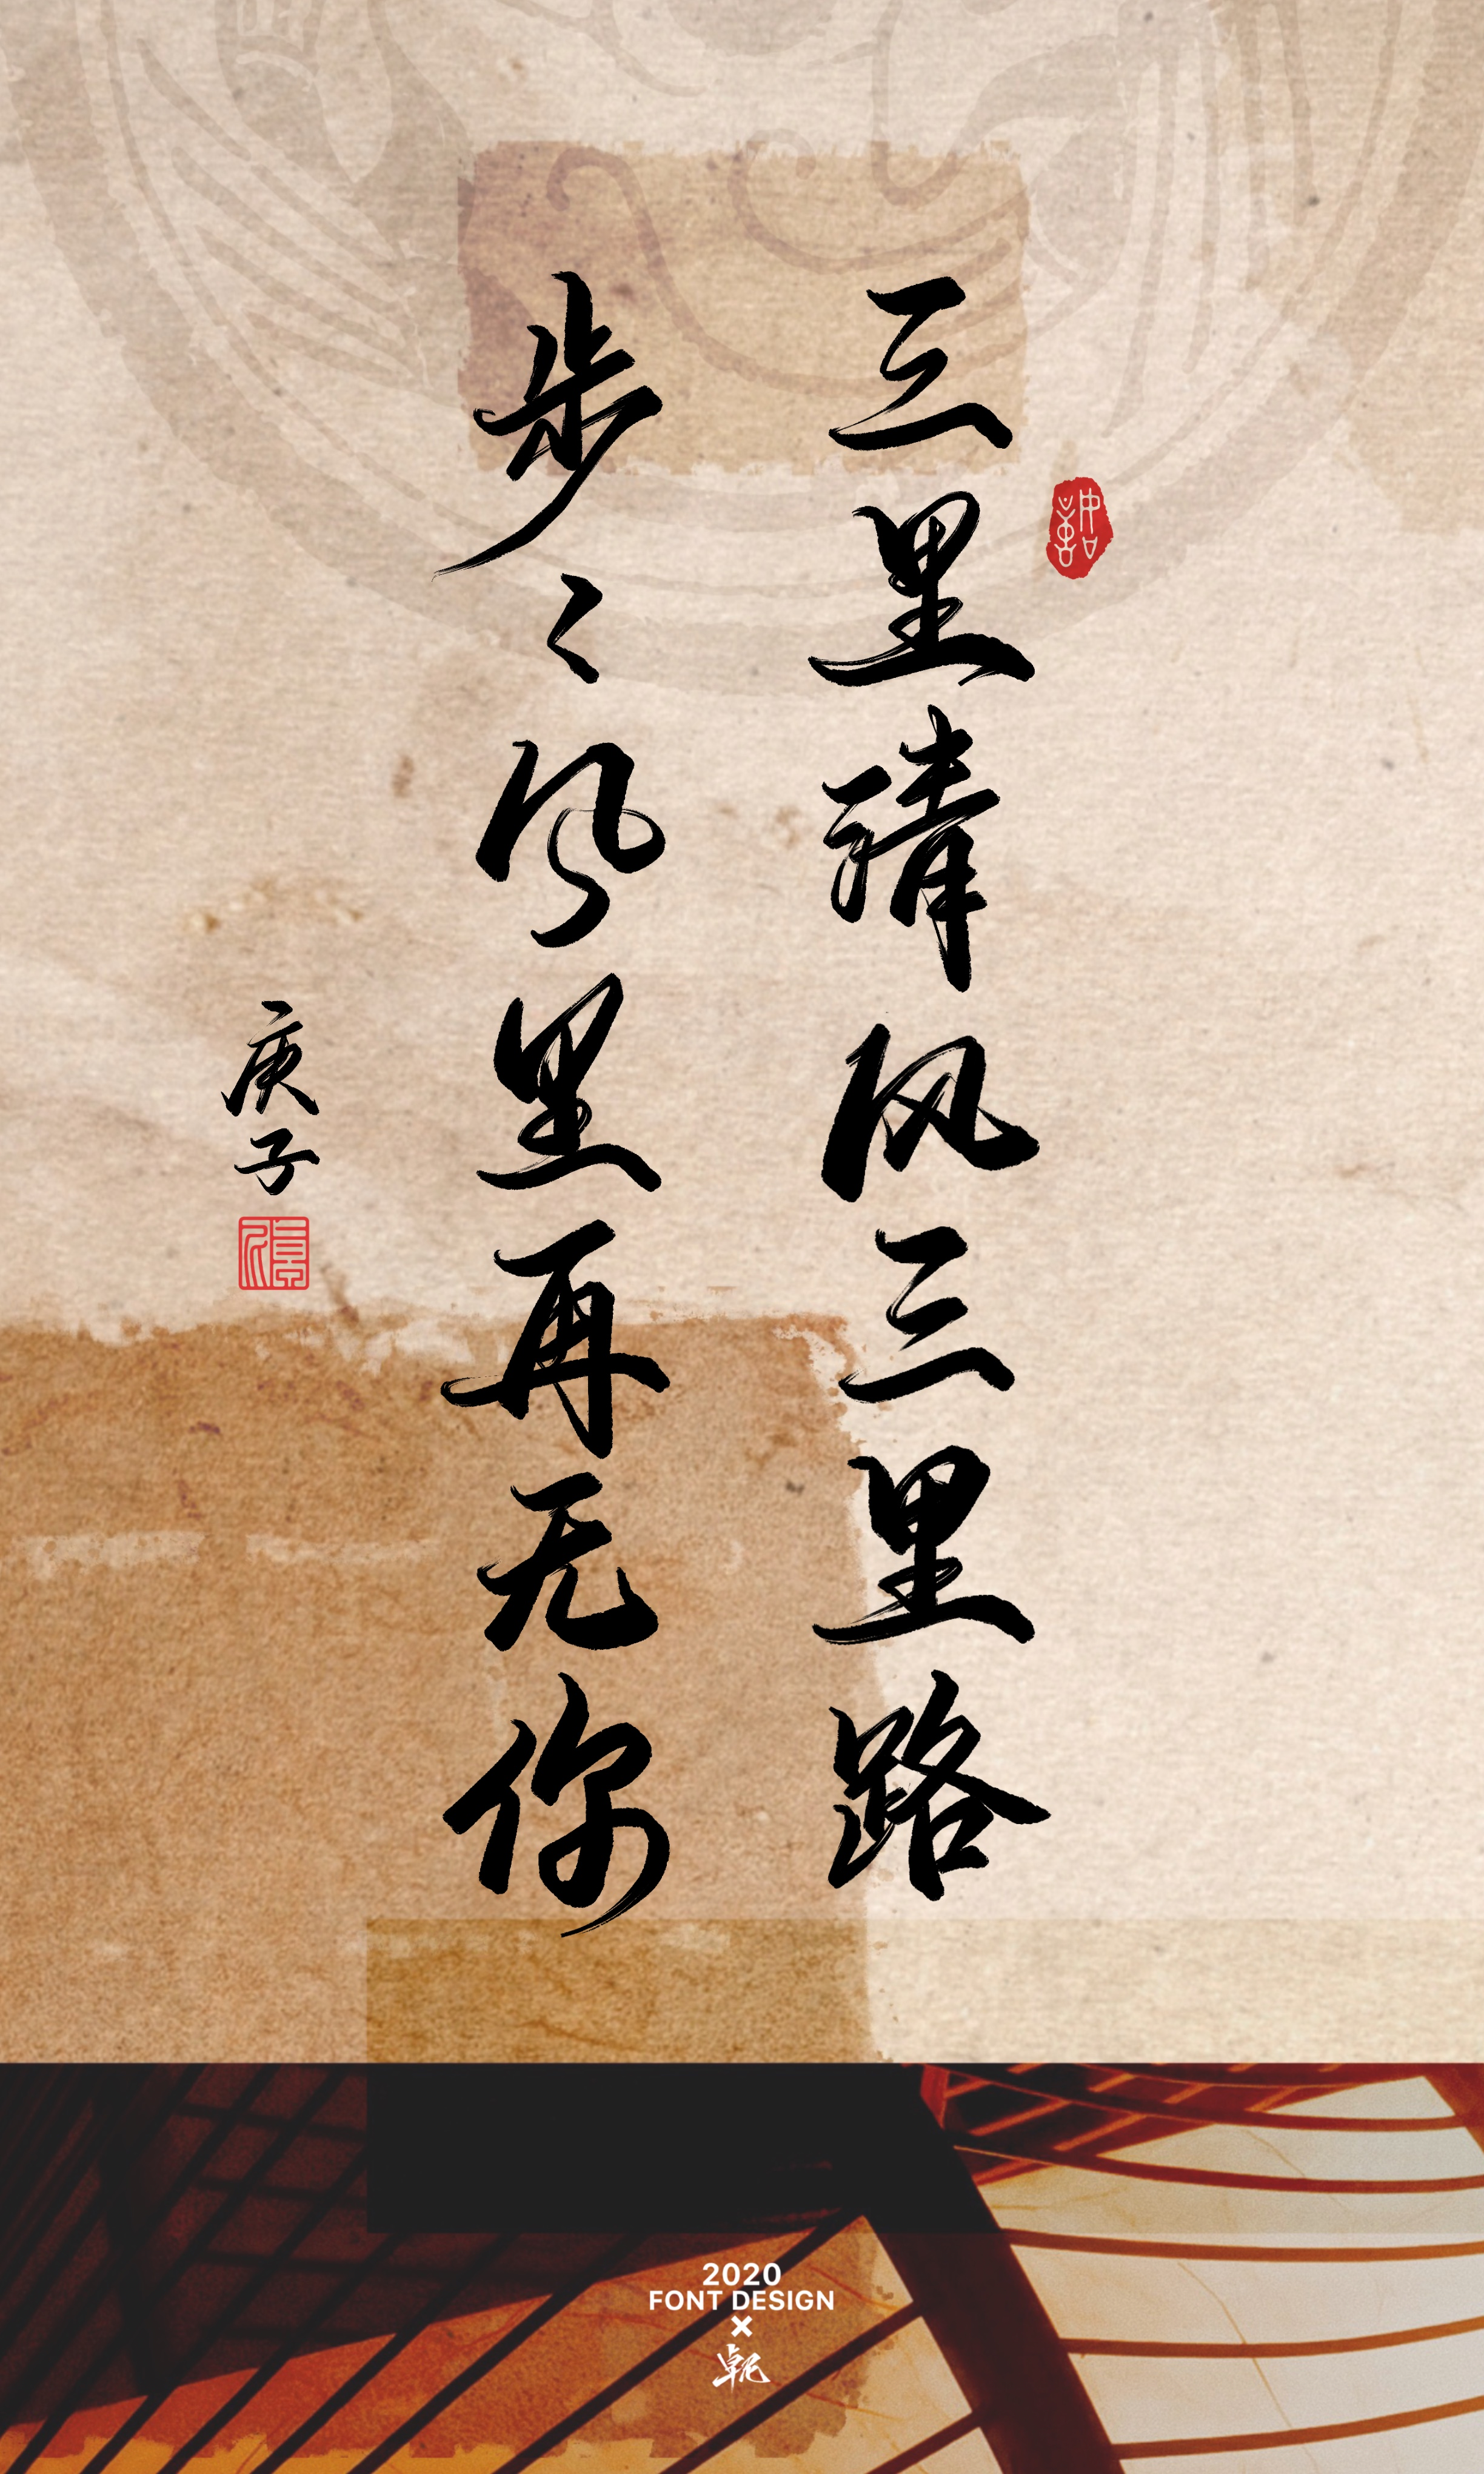 Interesting Chinese Creative Font Design-The Collision between Elegant Classical Chinese and Modern Chinese